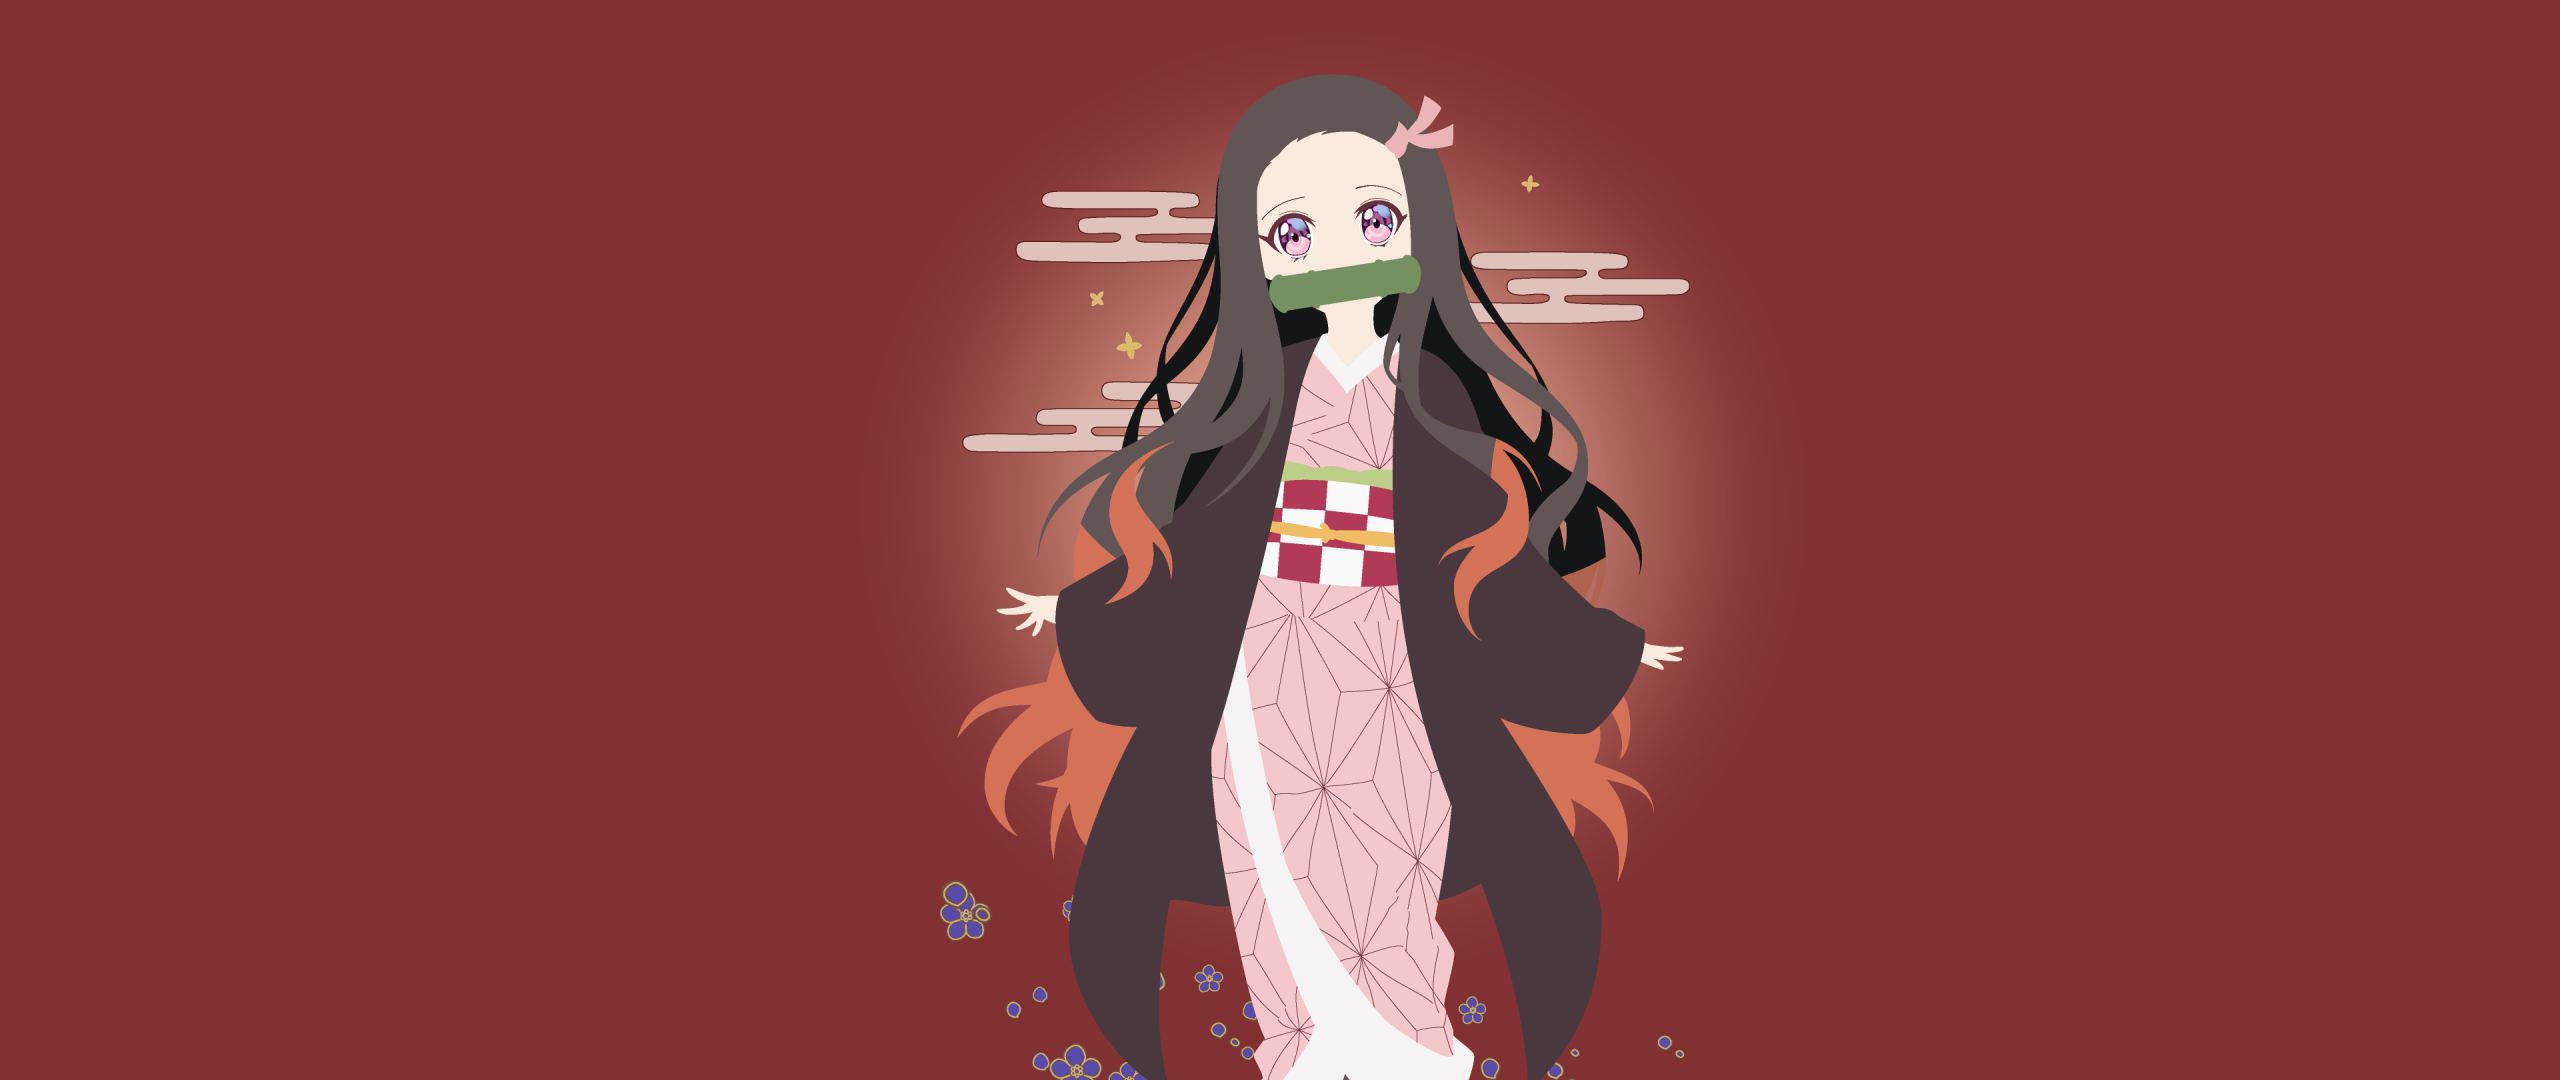 2560x1080 Nezuko 2560x1080 Resolution Wallpaper, HD Anime 4K Wallpapers, Images, Photos and ...